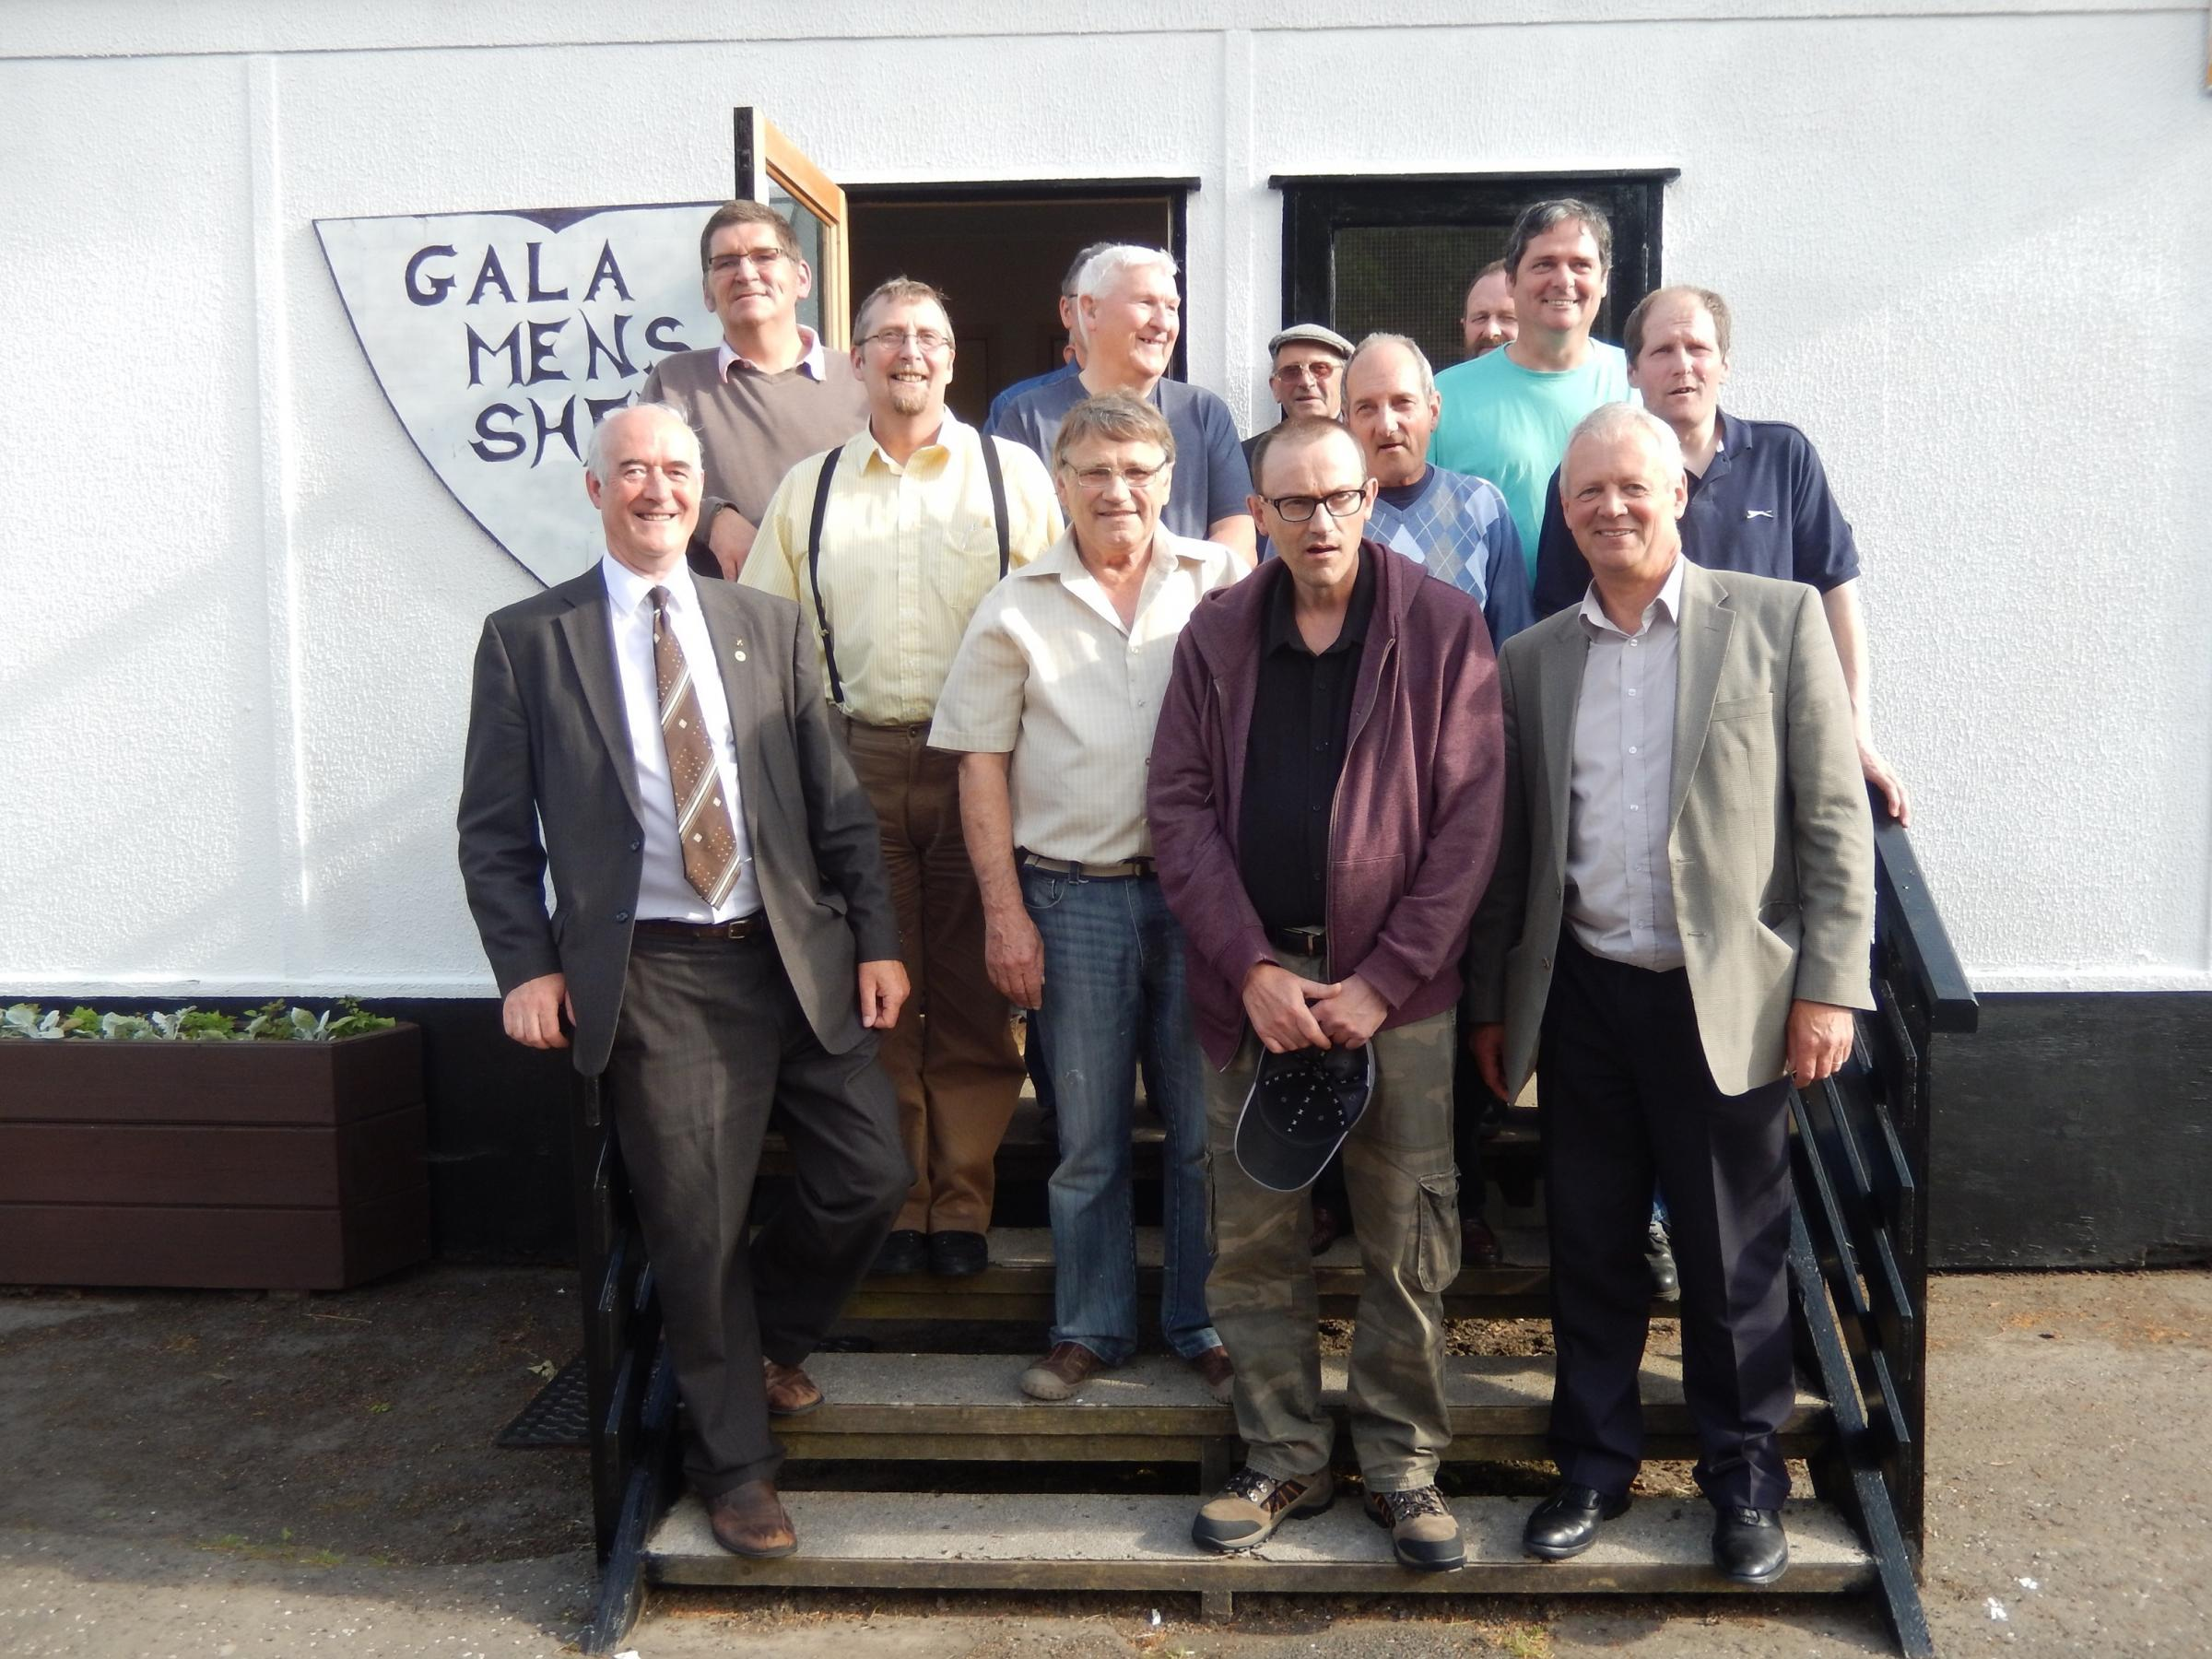 The Galashiels Men's Shed opened in 2014